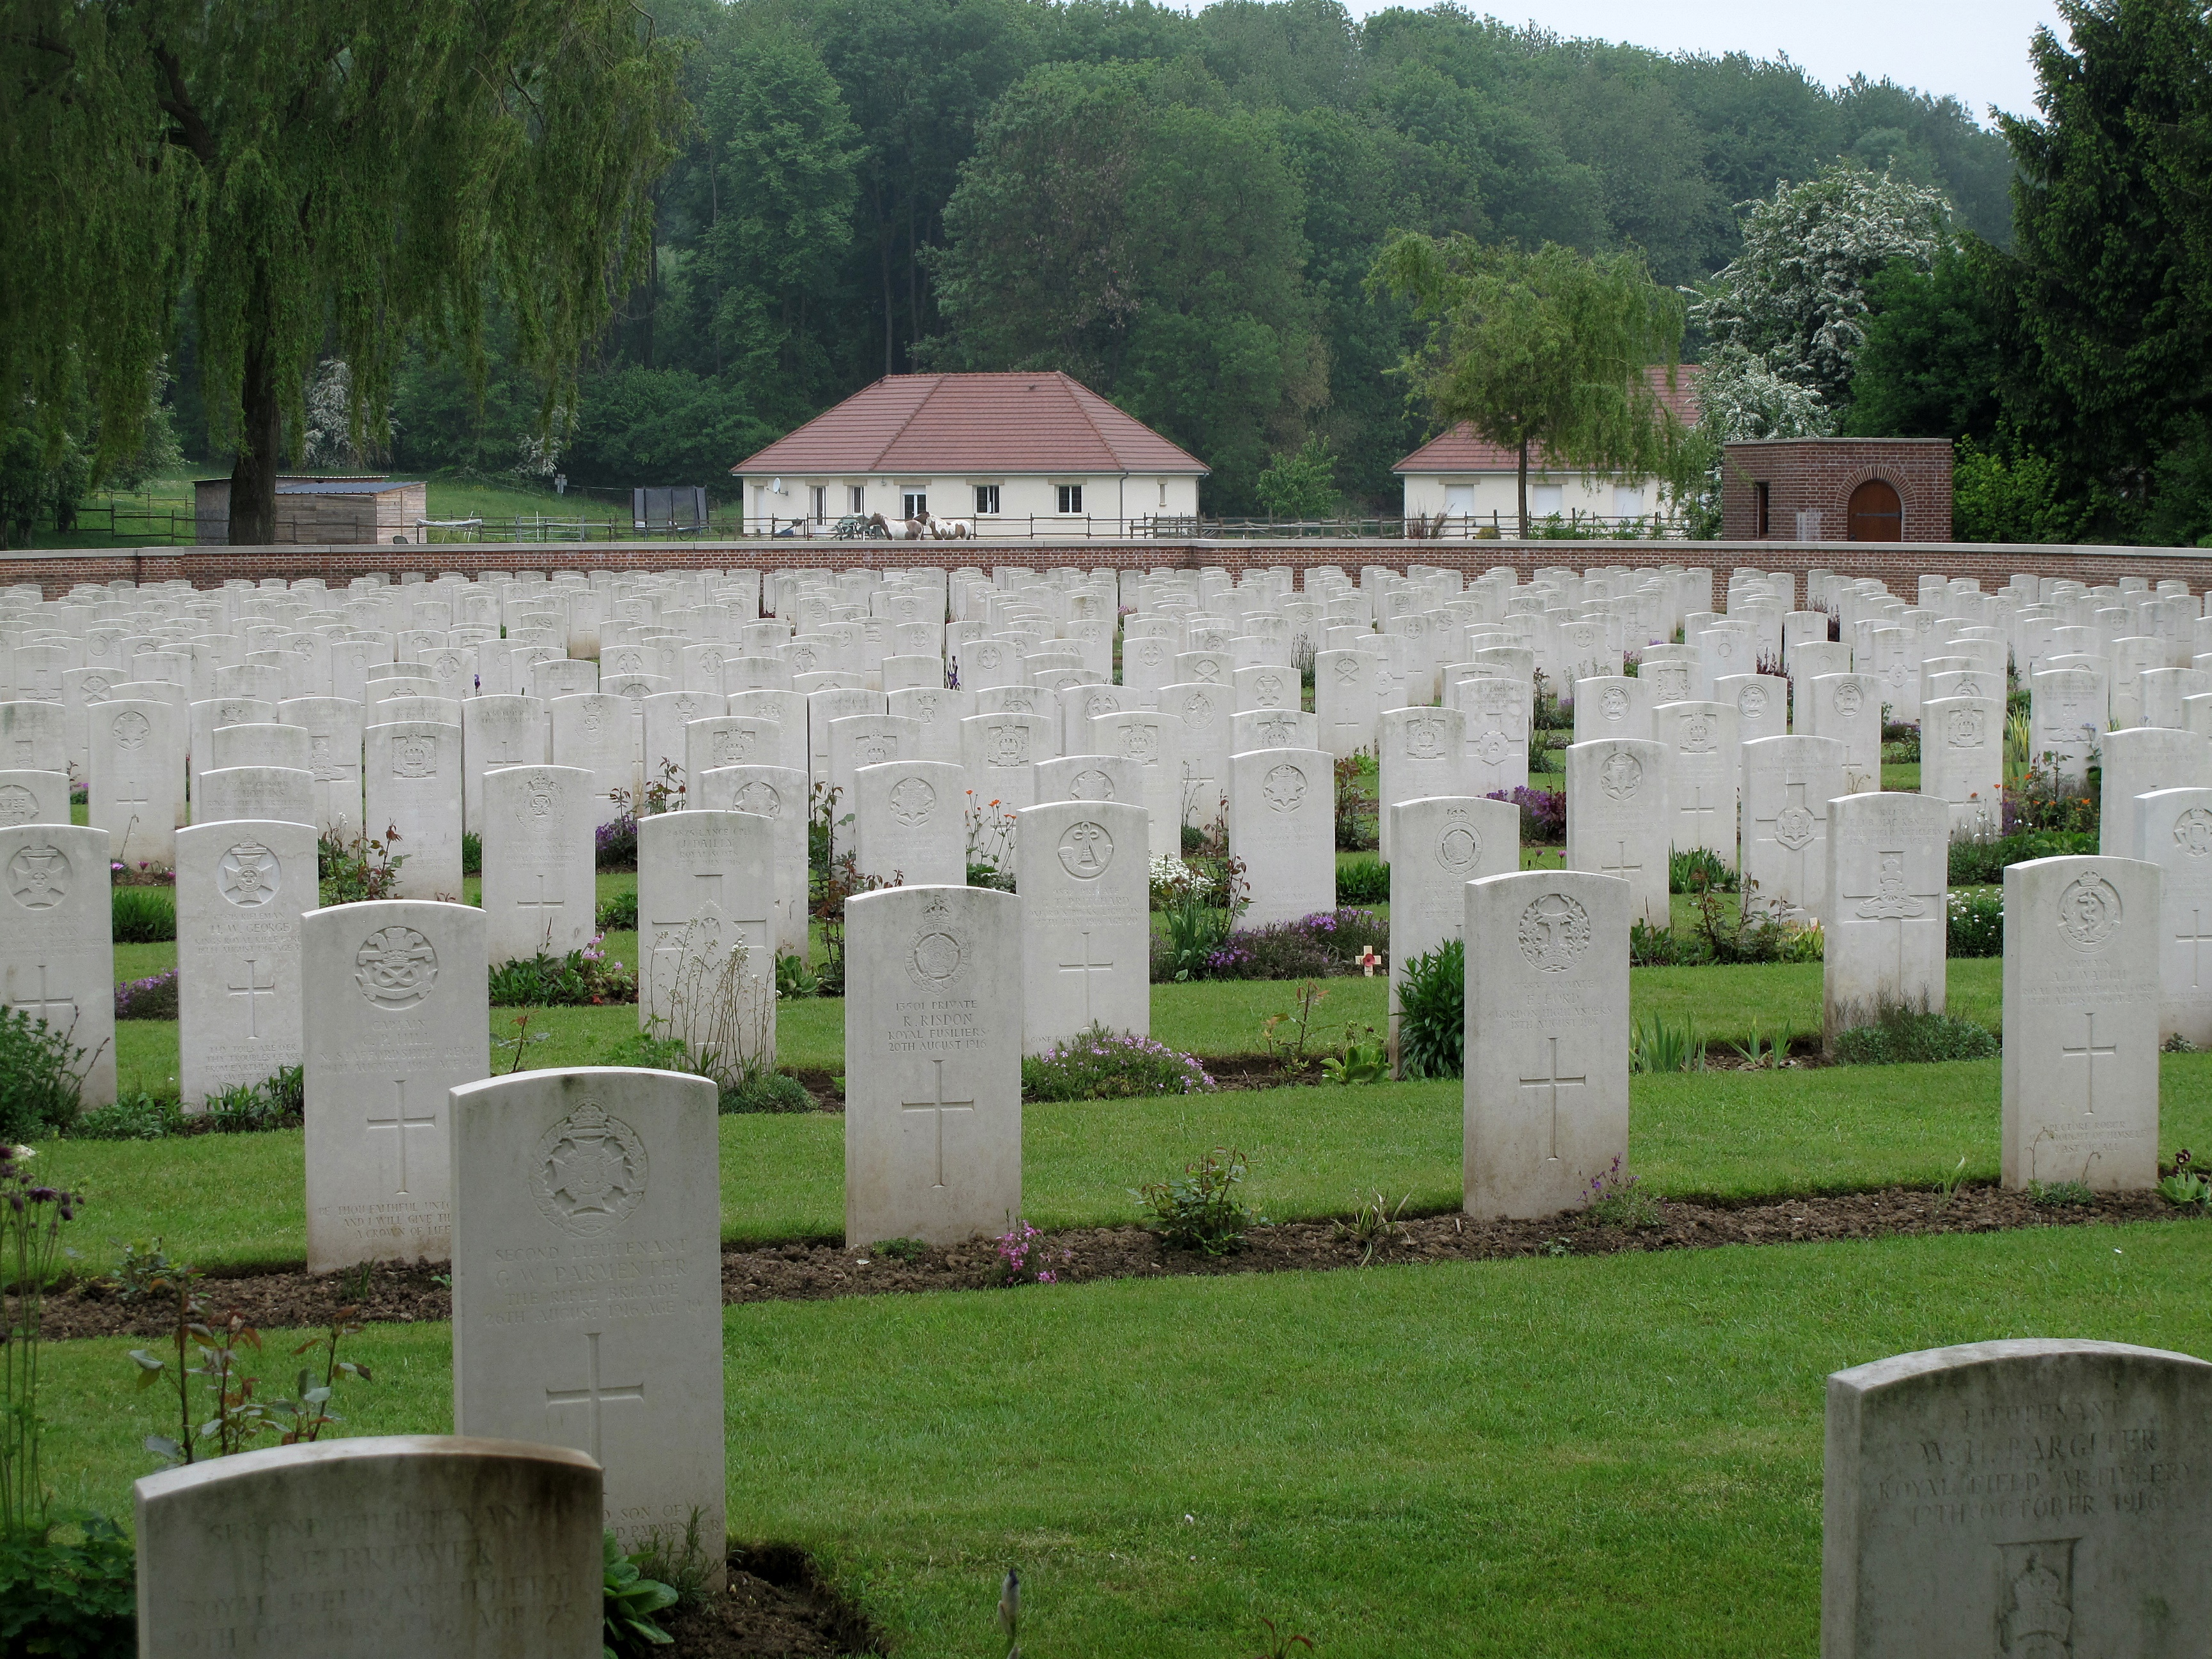 Carnoy Military Cemetery, where Henry Archibald Cubitt is buried - P. 7 (The War Graves Photographic Project - TWGPP)